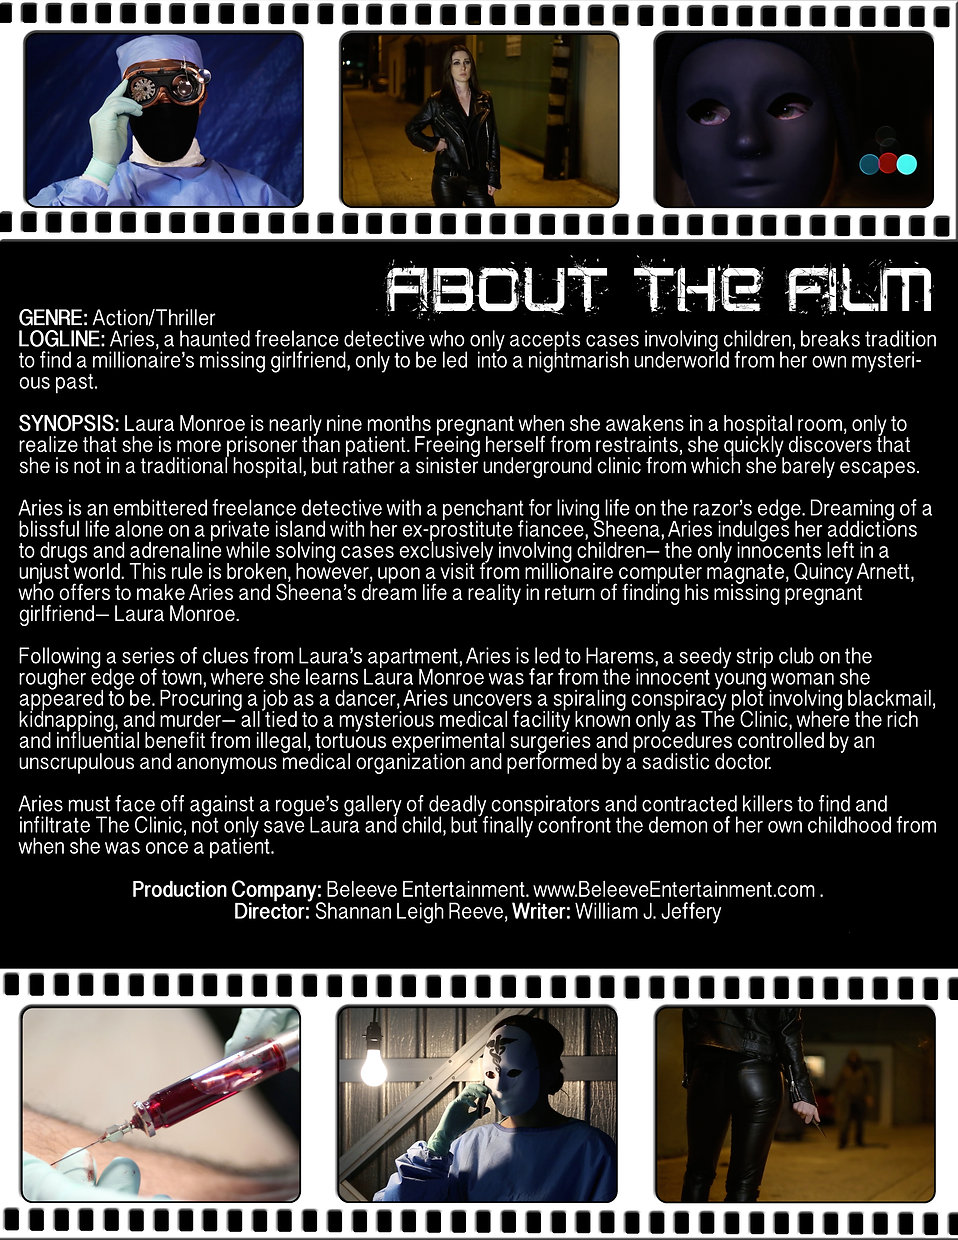 Black text on white background explaining the film. Images of people in masks and with medical equip